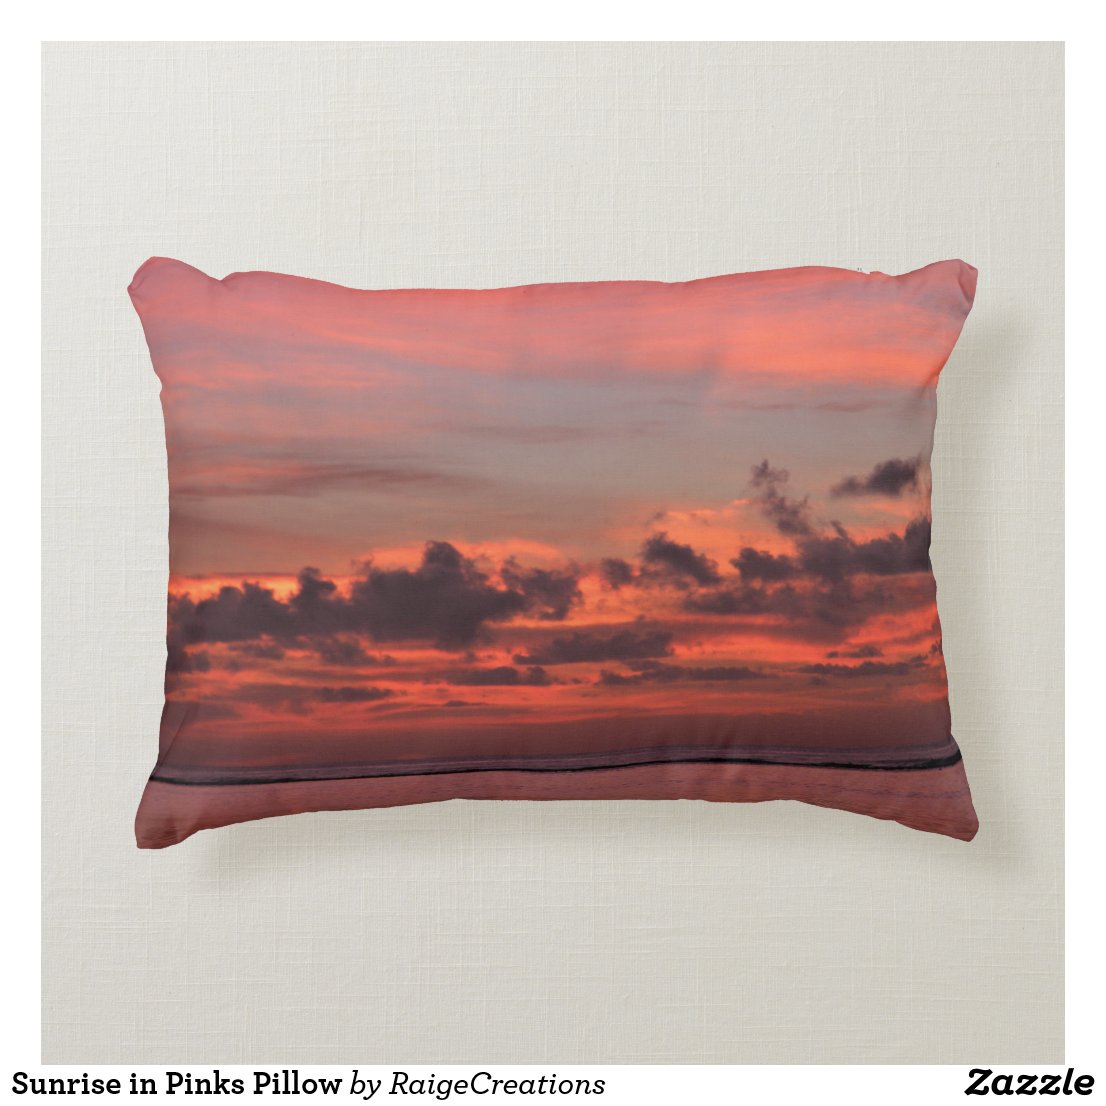 Sunrise in Pinks Pillow